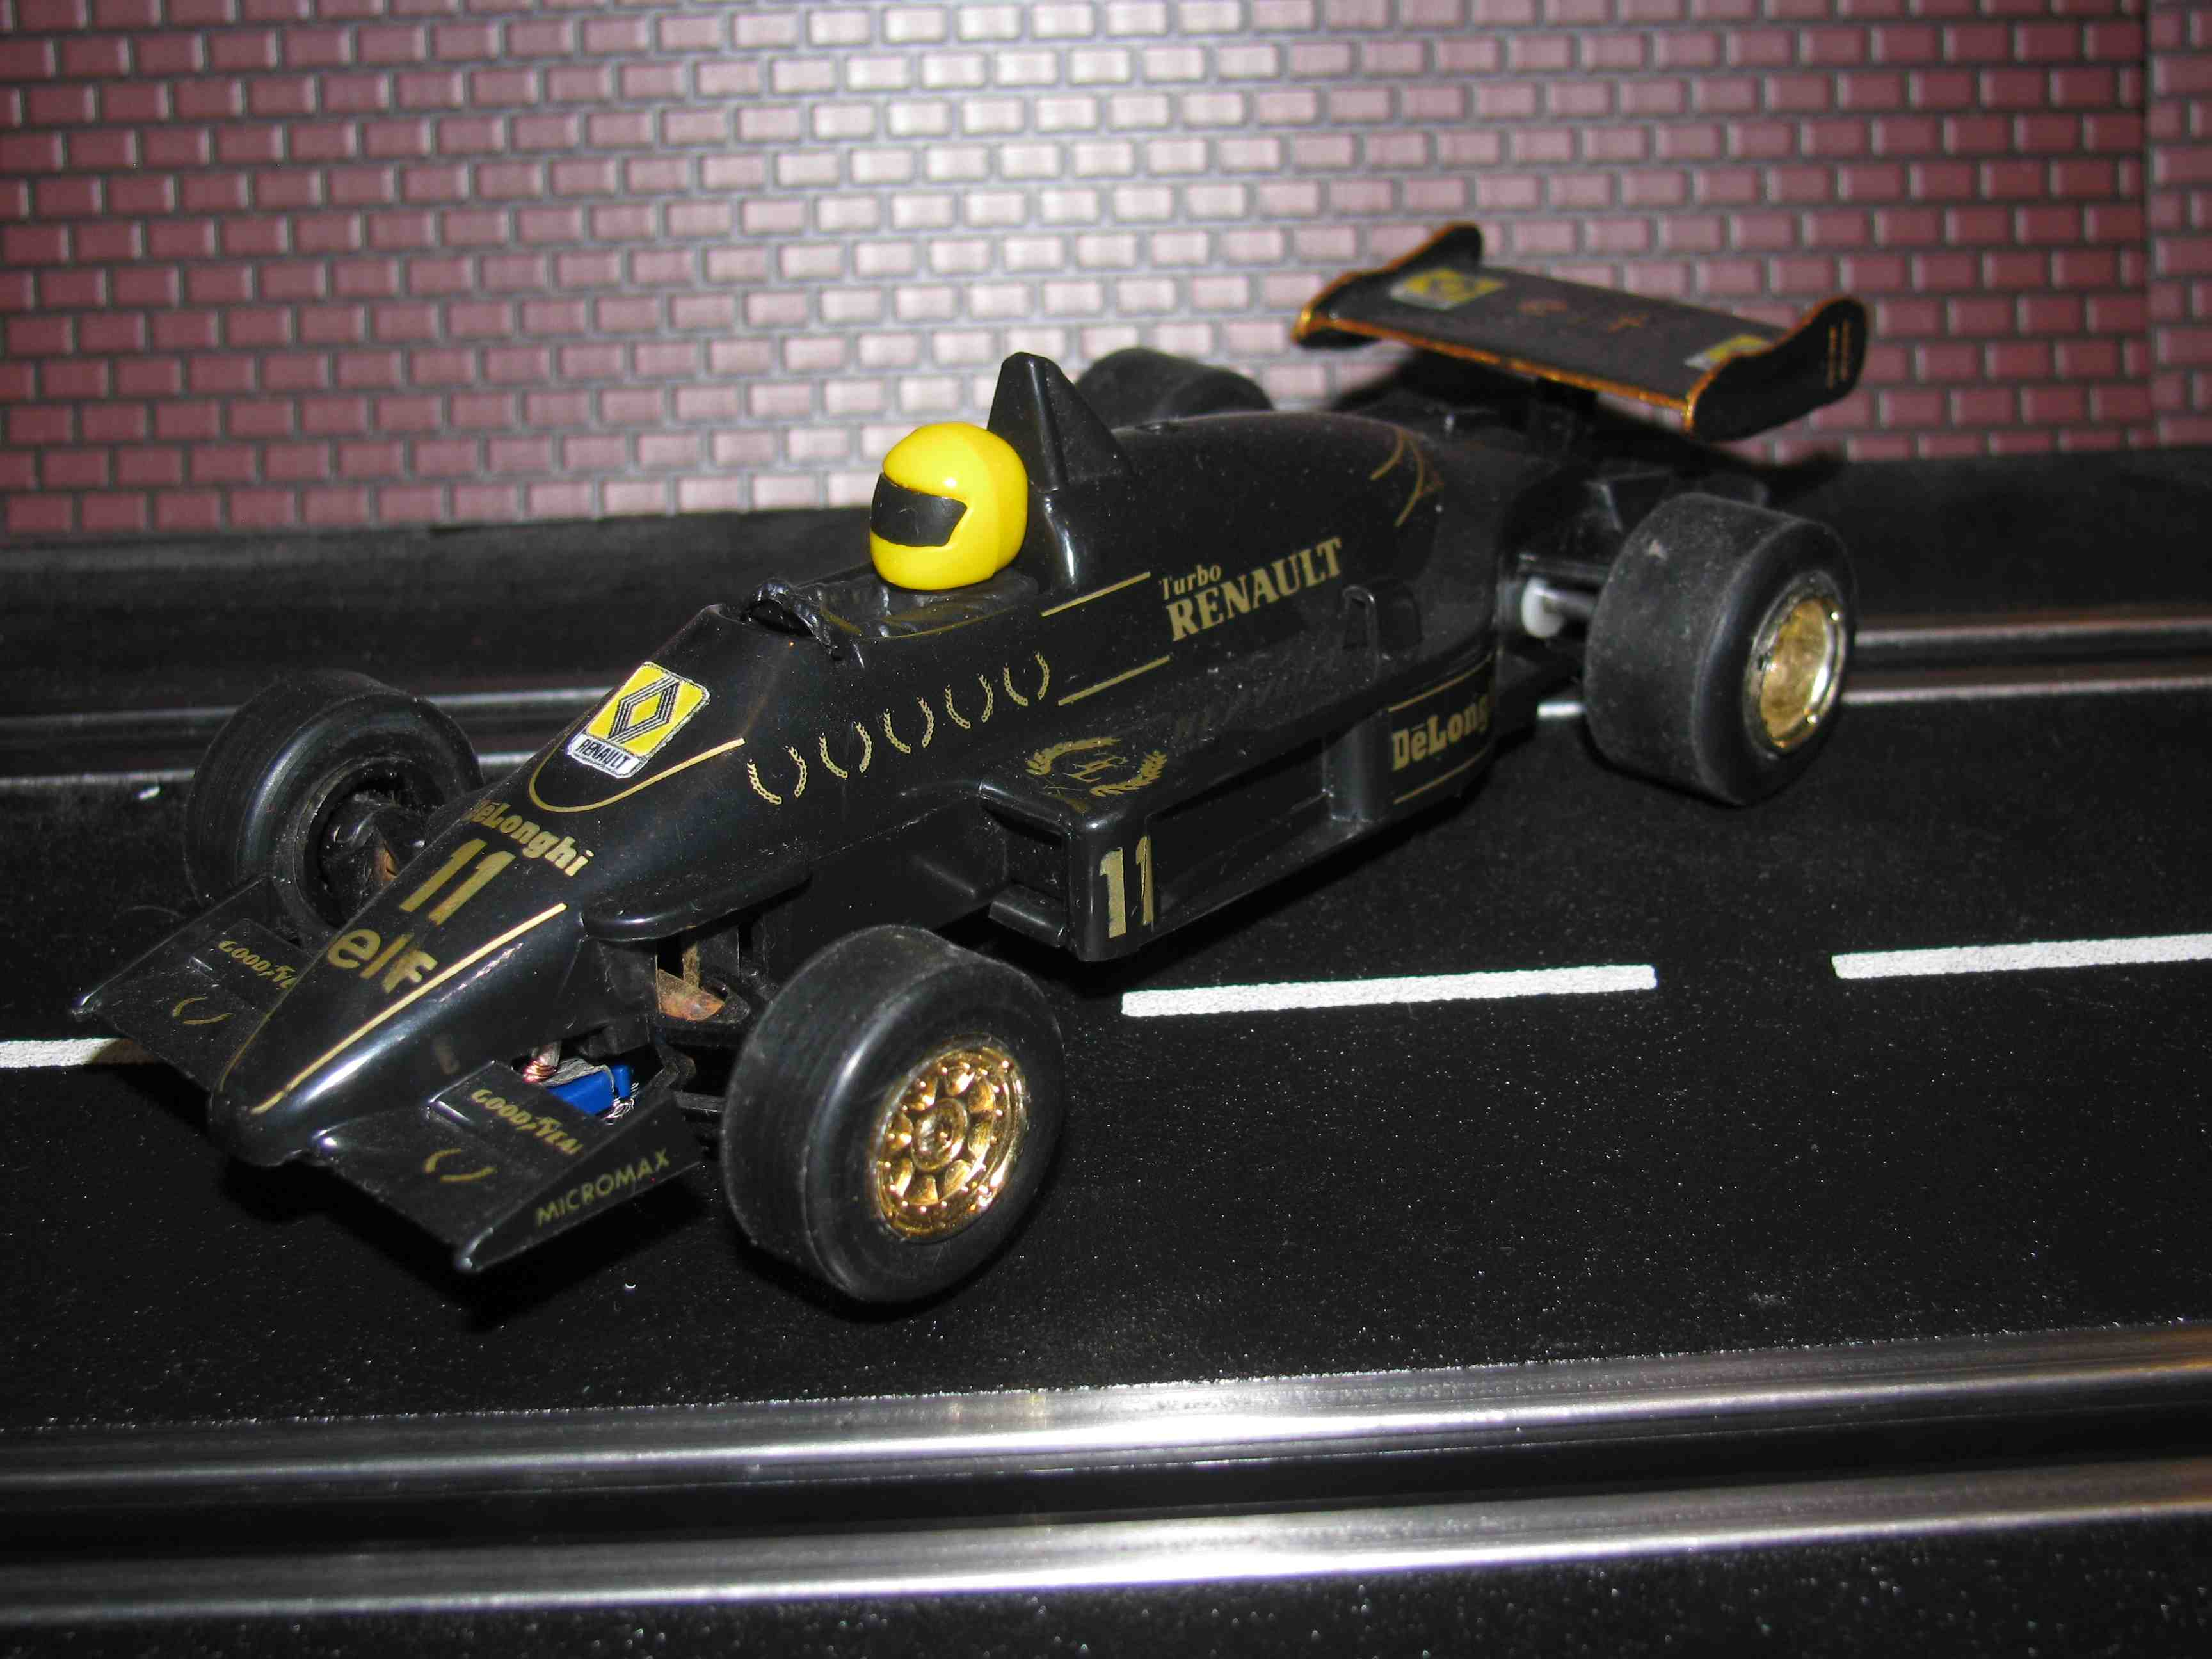 * SOLD * Scalextric DeLonghi elf Renault F1 Slot Car 1/32 Scale – Black – Car 11